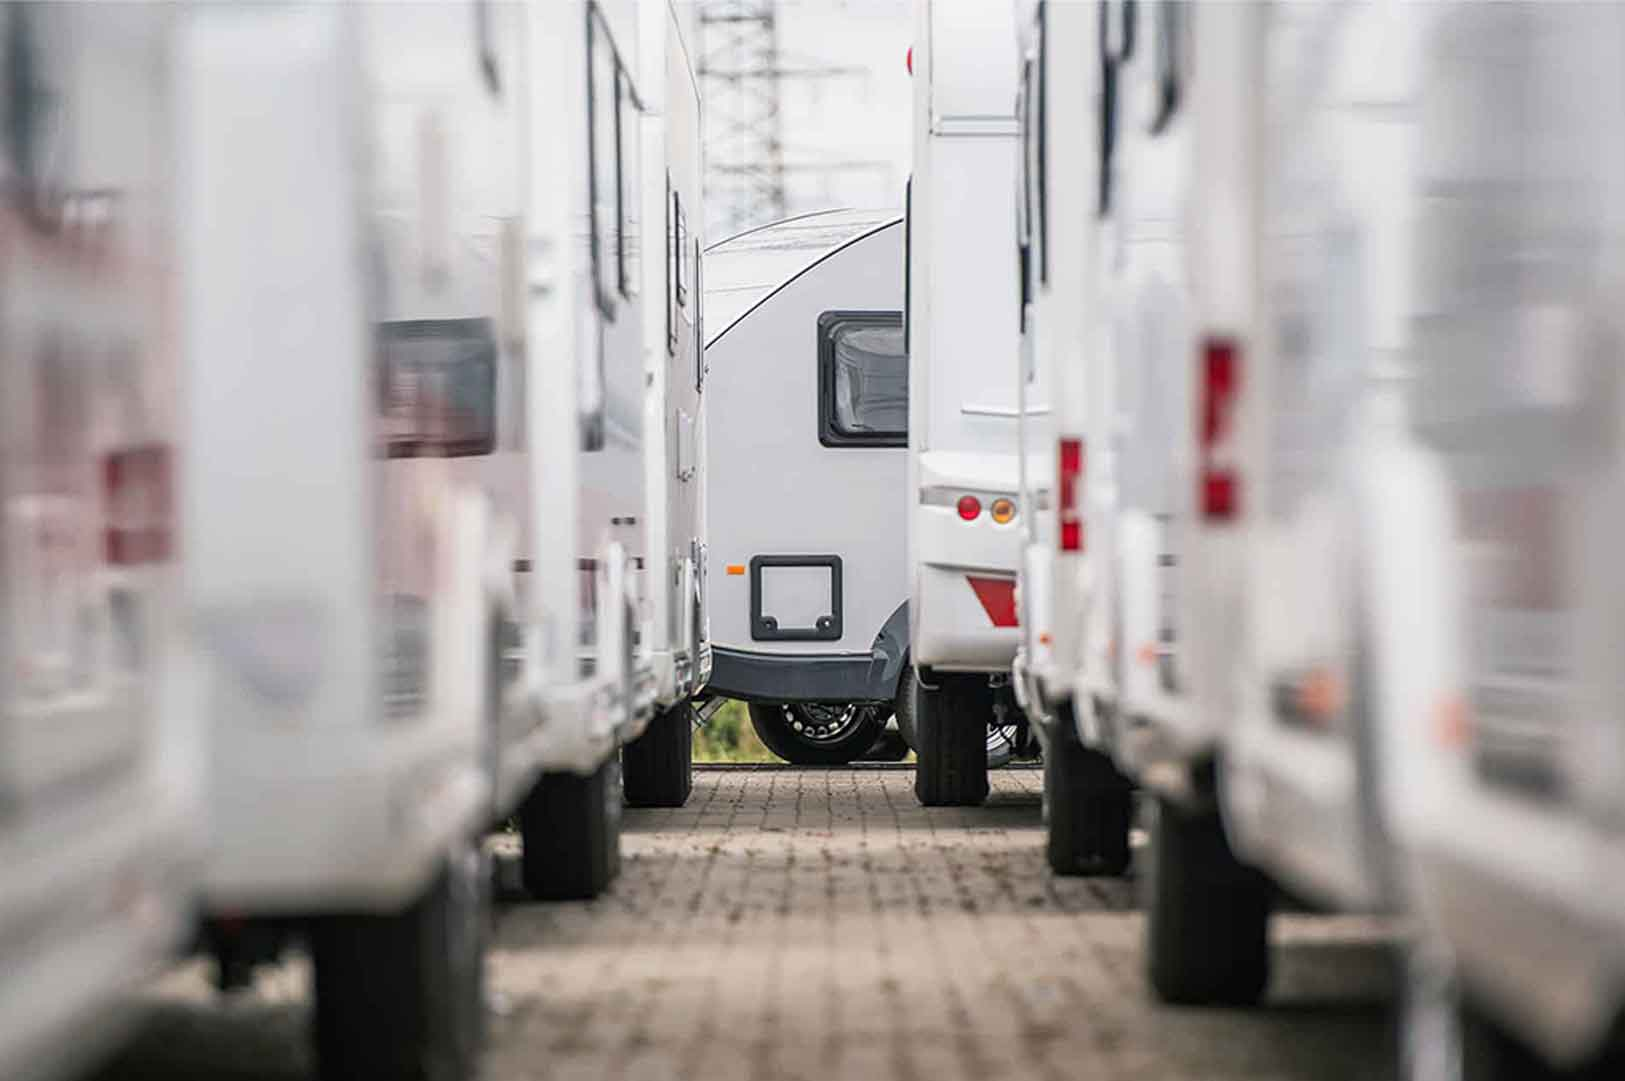 RV Brands To Avoid: We Conducted A Survey & Here Are The Reasons